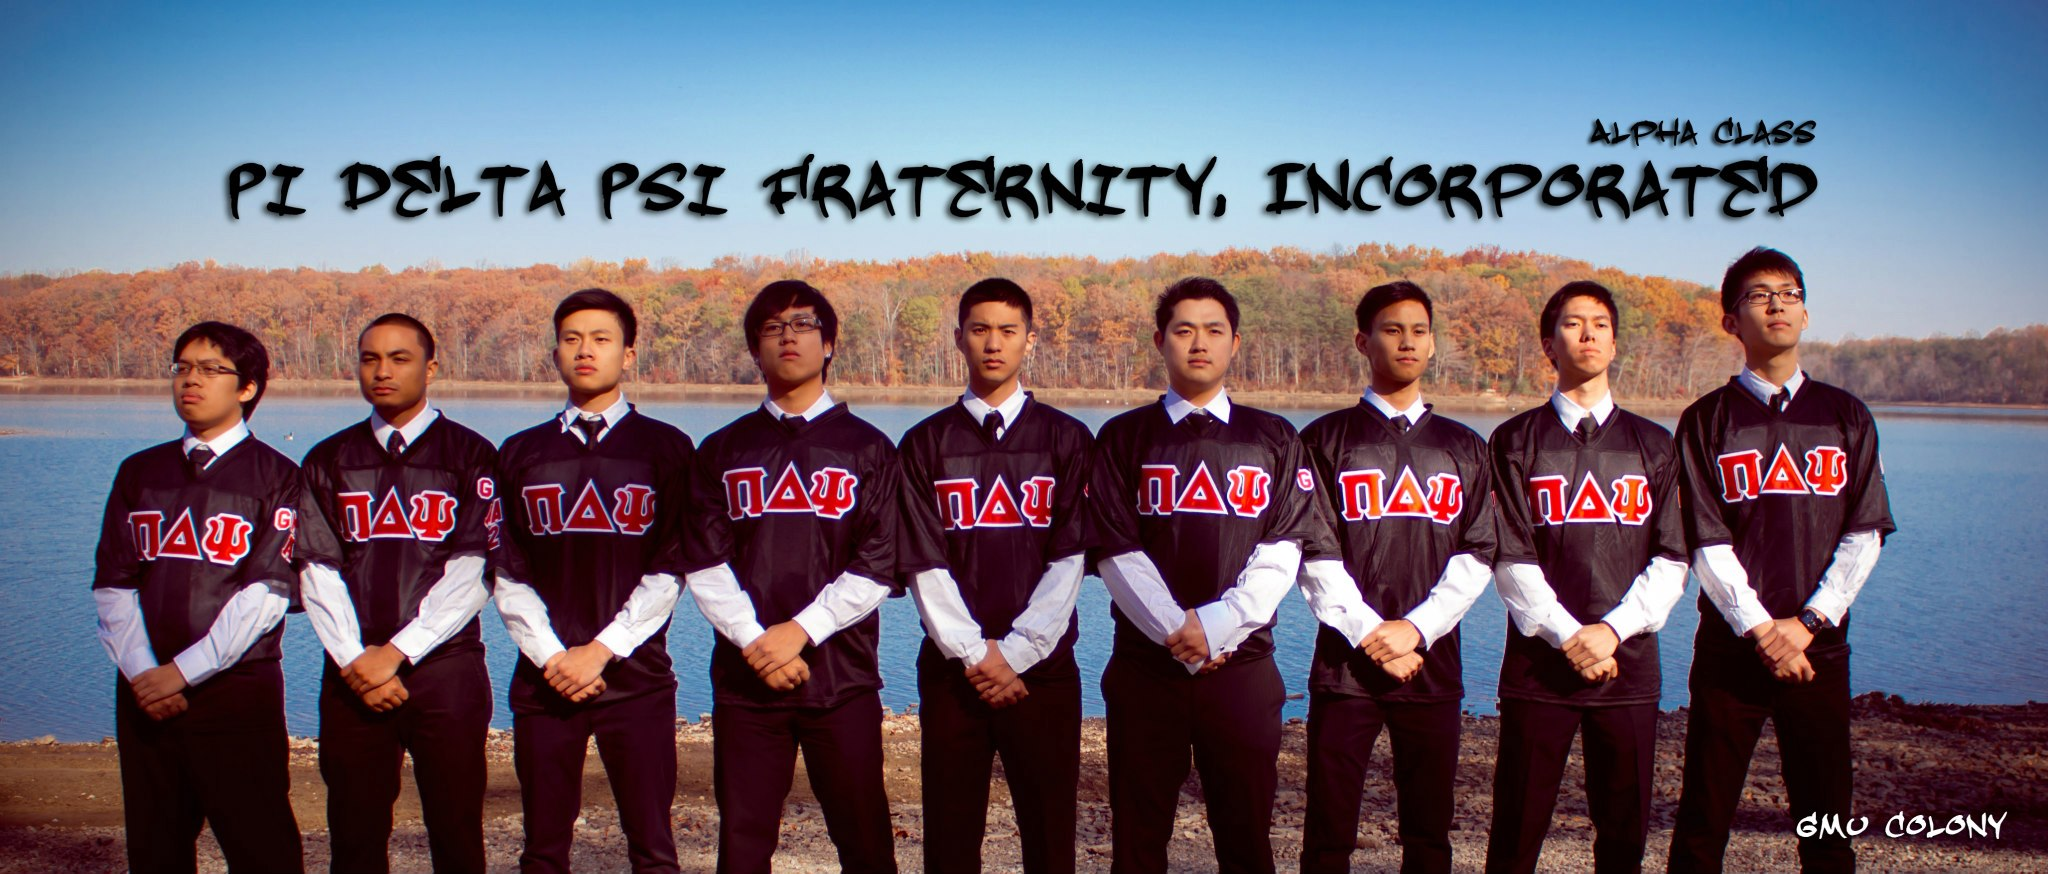 South Asian Fraternities 93